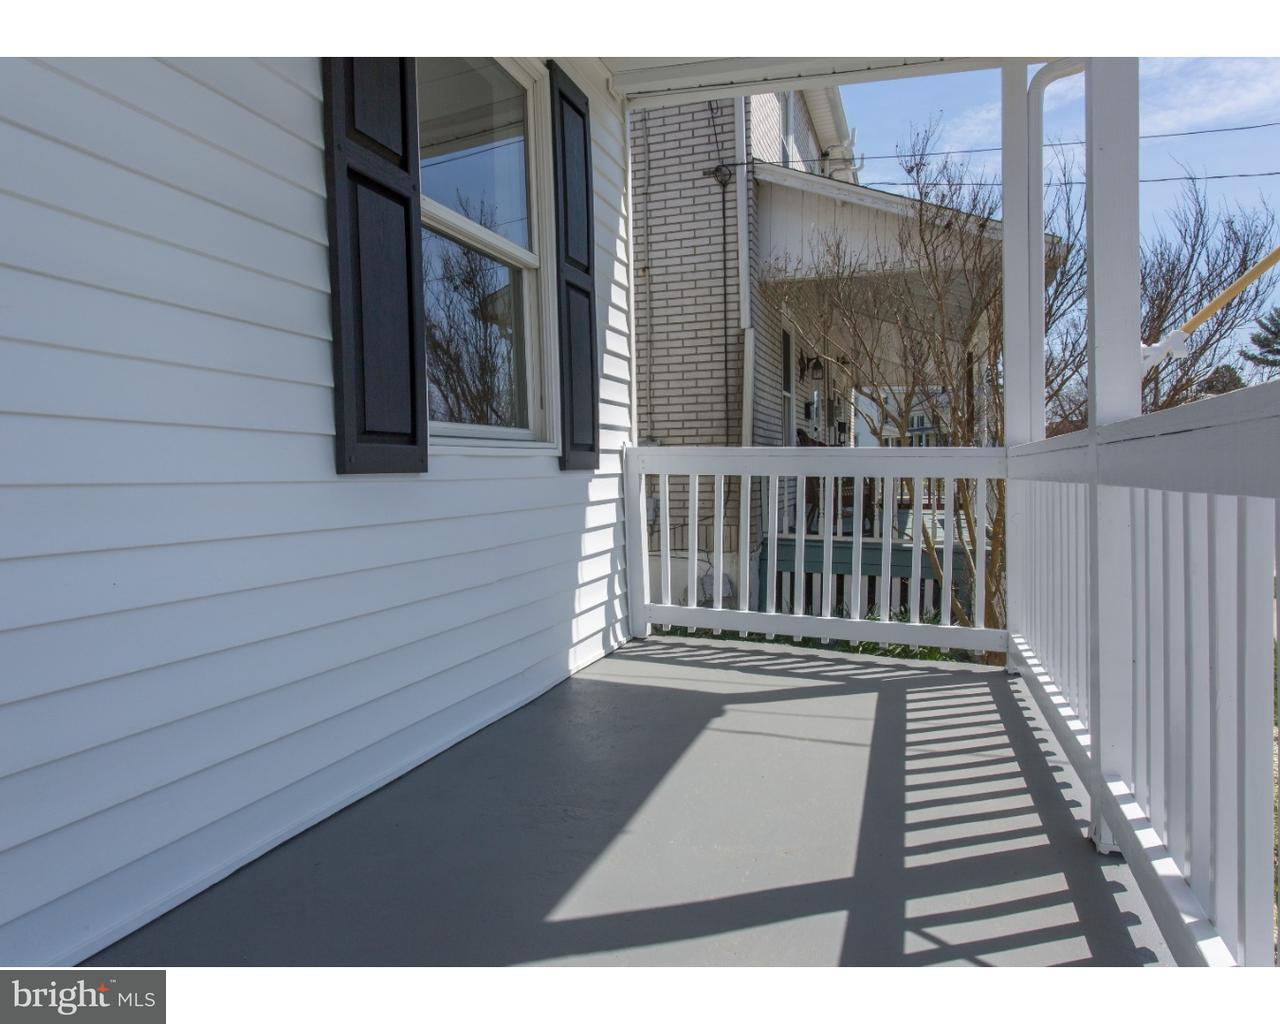 447 HODGSON ST, OXFORD - Listed at $1,400, OXFORD